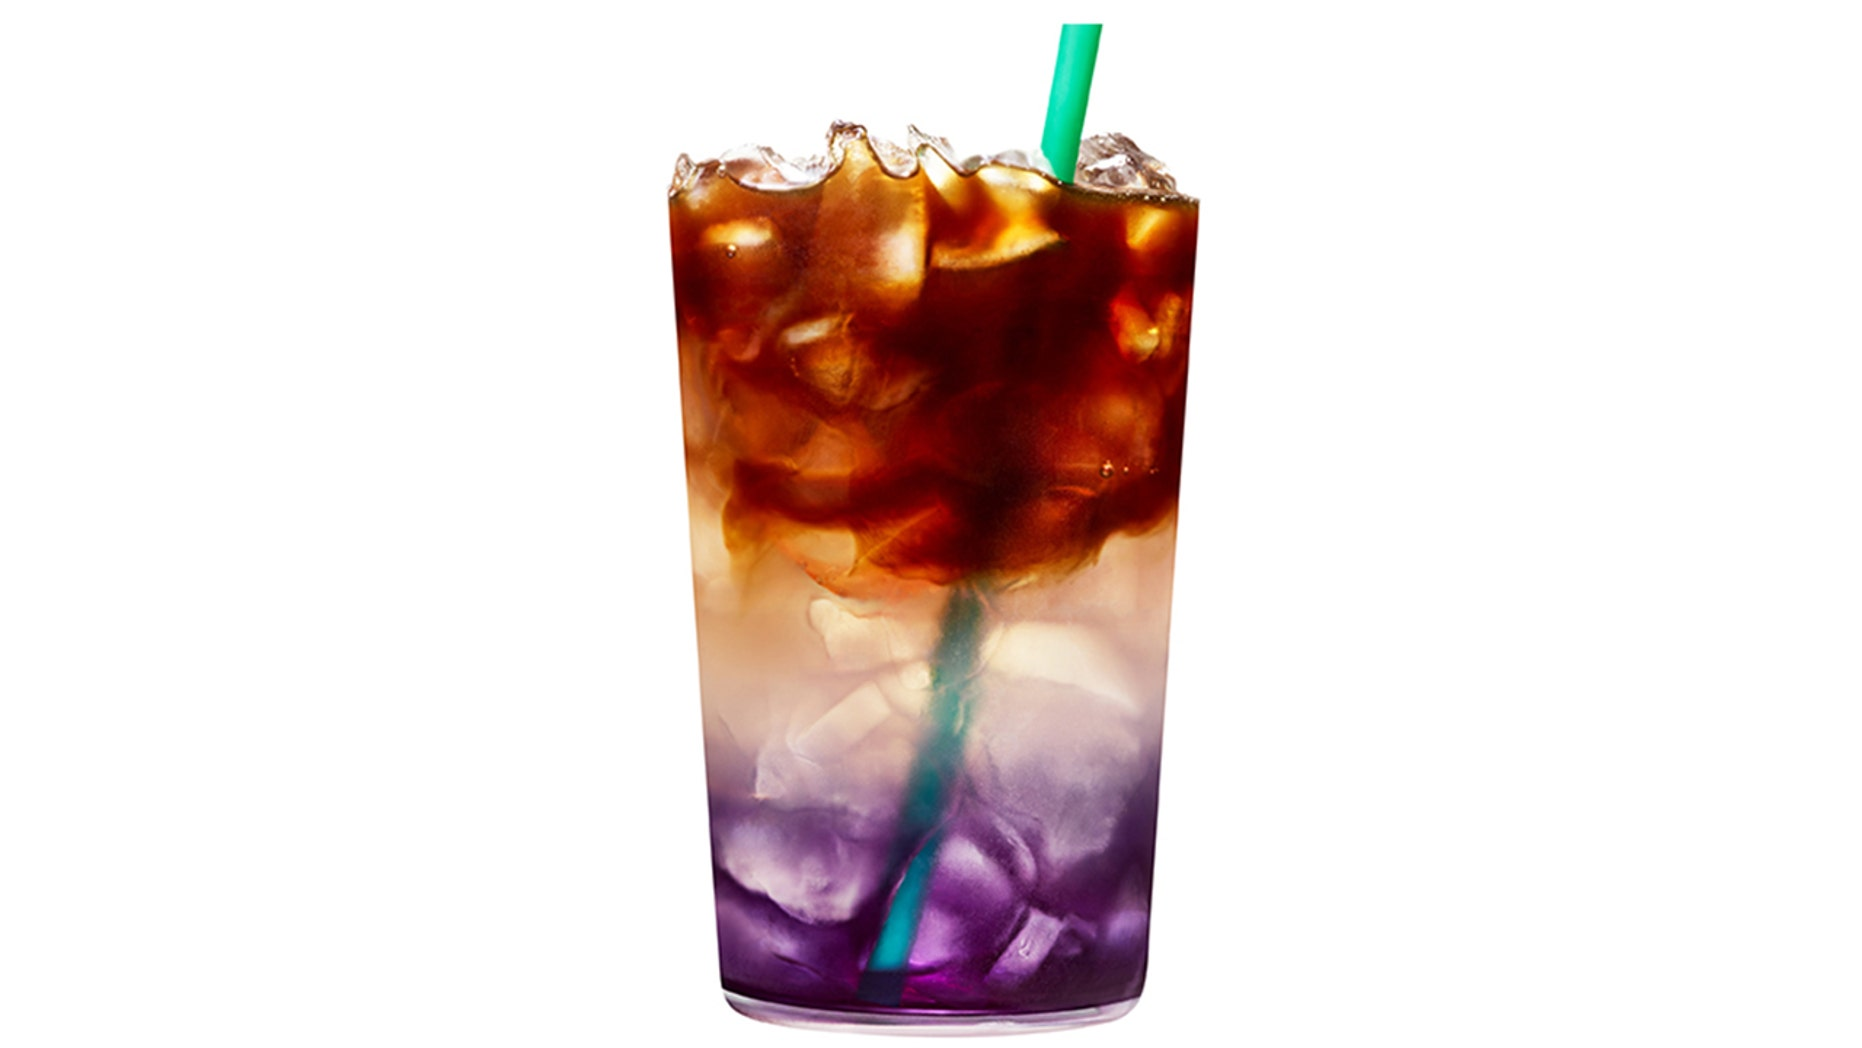 The tricolored drink is avaliable for a limited time only.